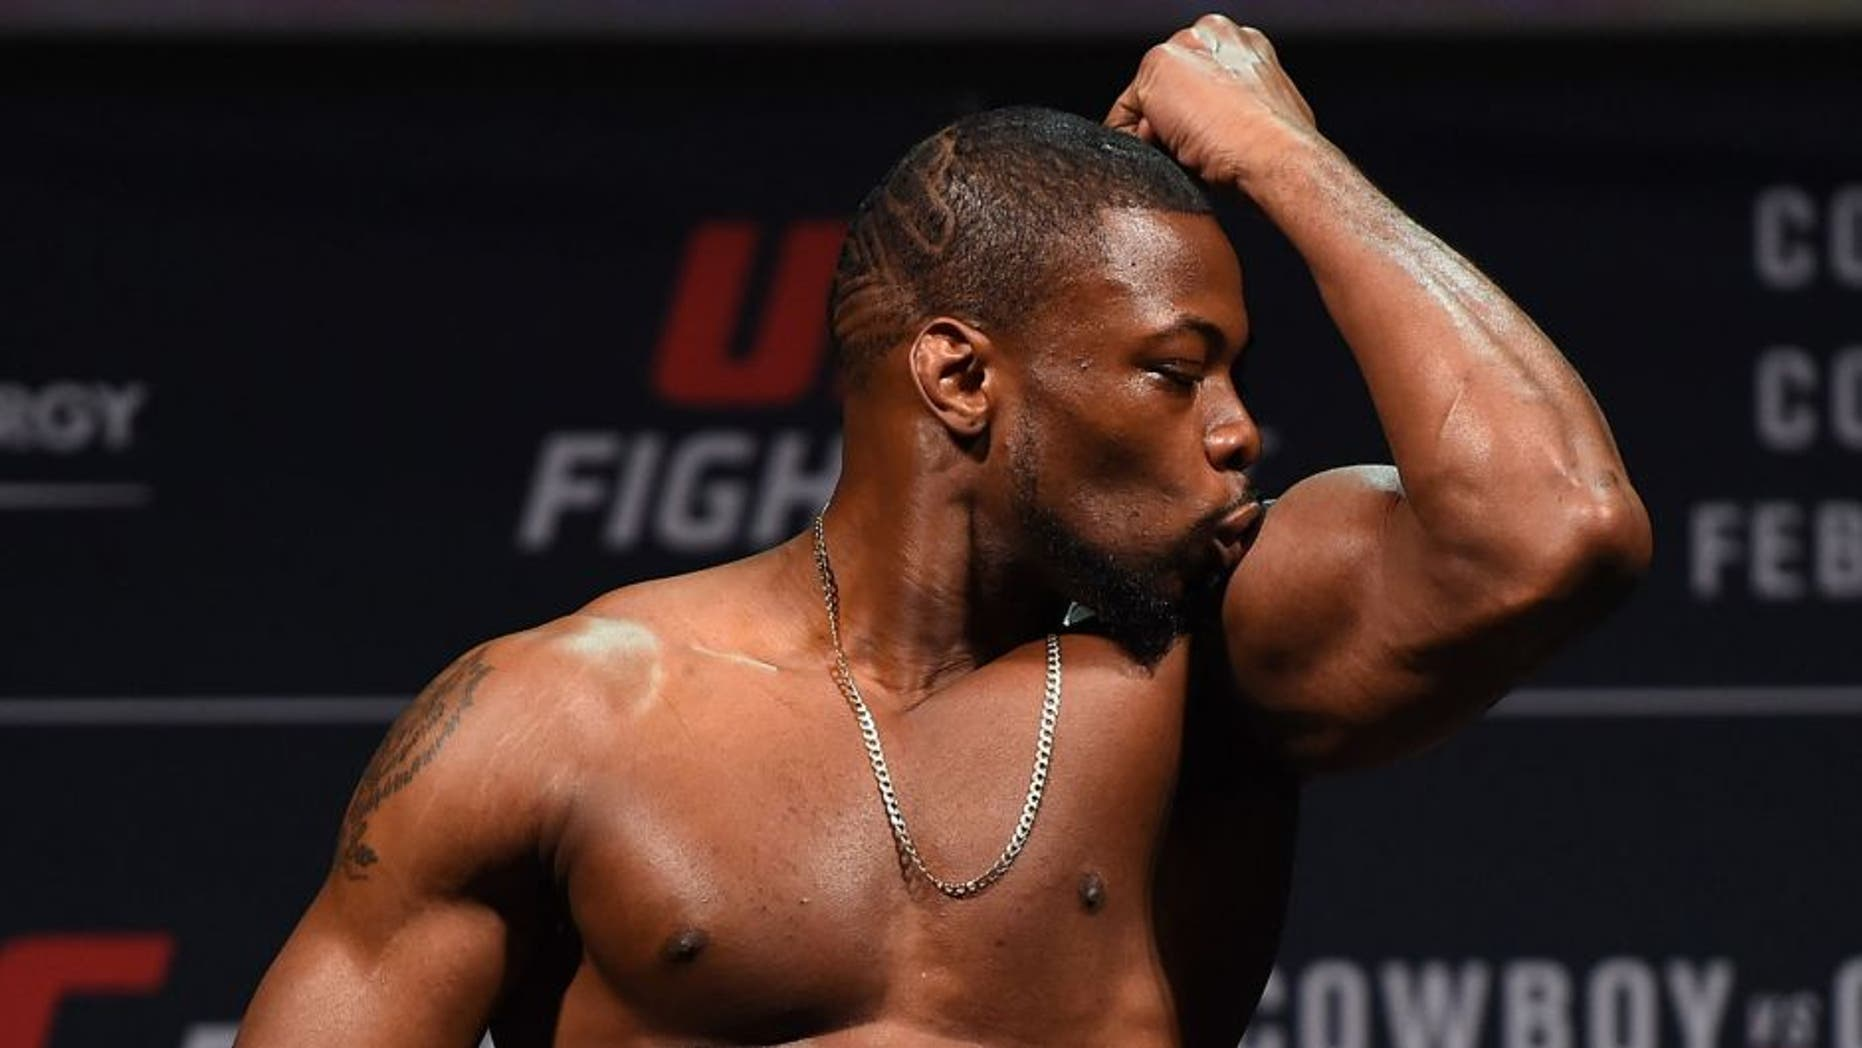 PITTSBURGH, PA - FEBRUARY 20: Oluwale Bamgbose of the United States steps on the scale during the UFC Fight Night weigh-in at Stage AE on February 20, 2016 in Pittsburgh, Pennsylvania. (Photo by Jeff Bottari/Zuffa LLC/Zuffa LLC via Getty Images)